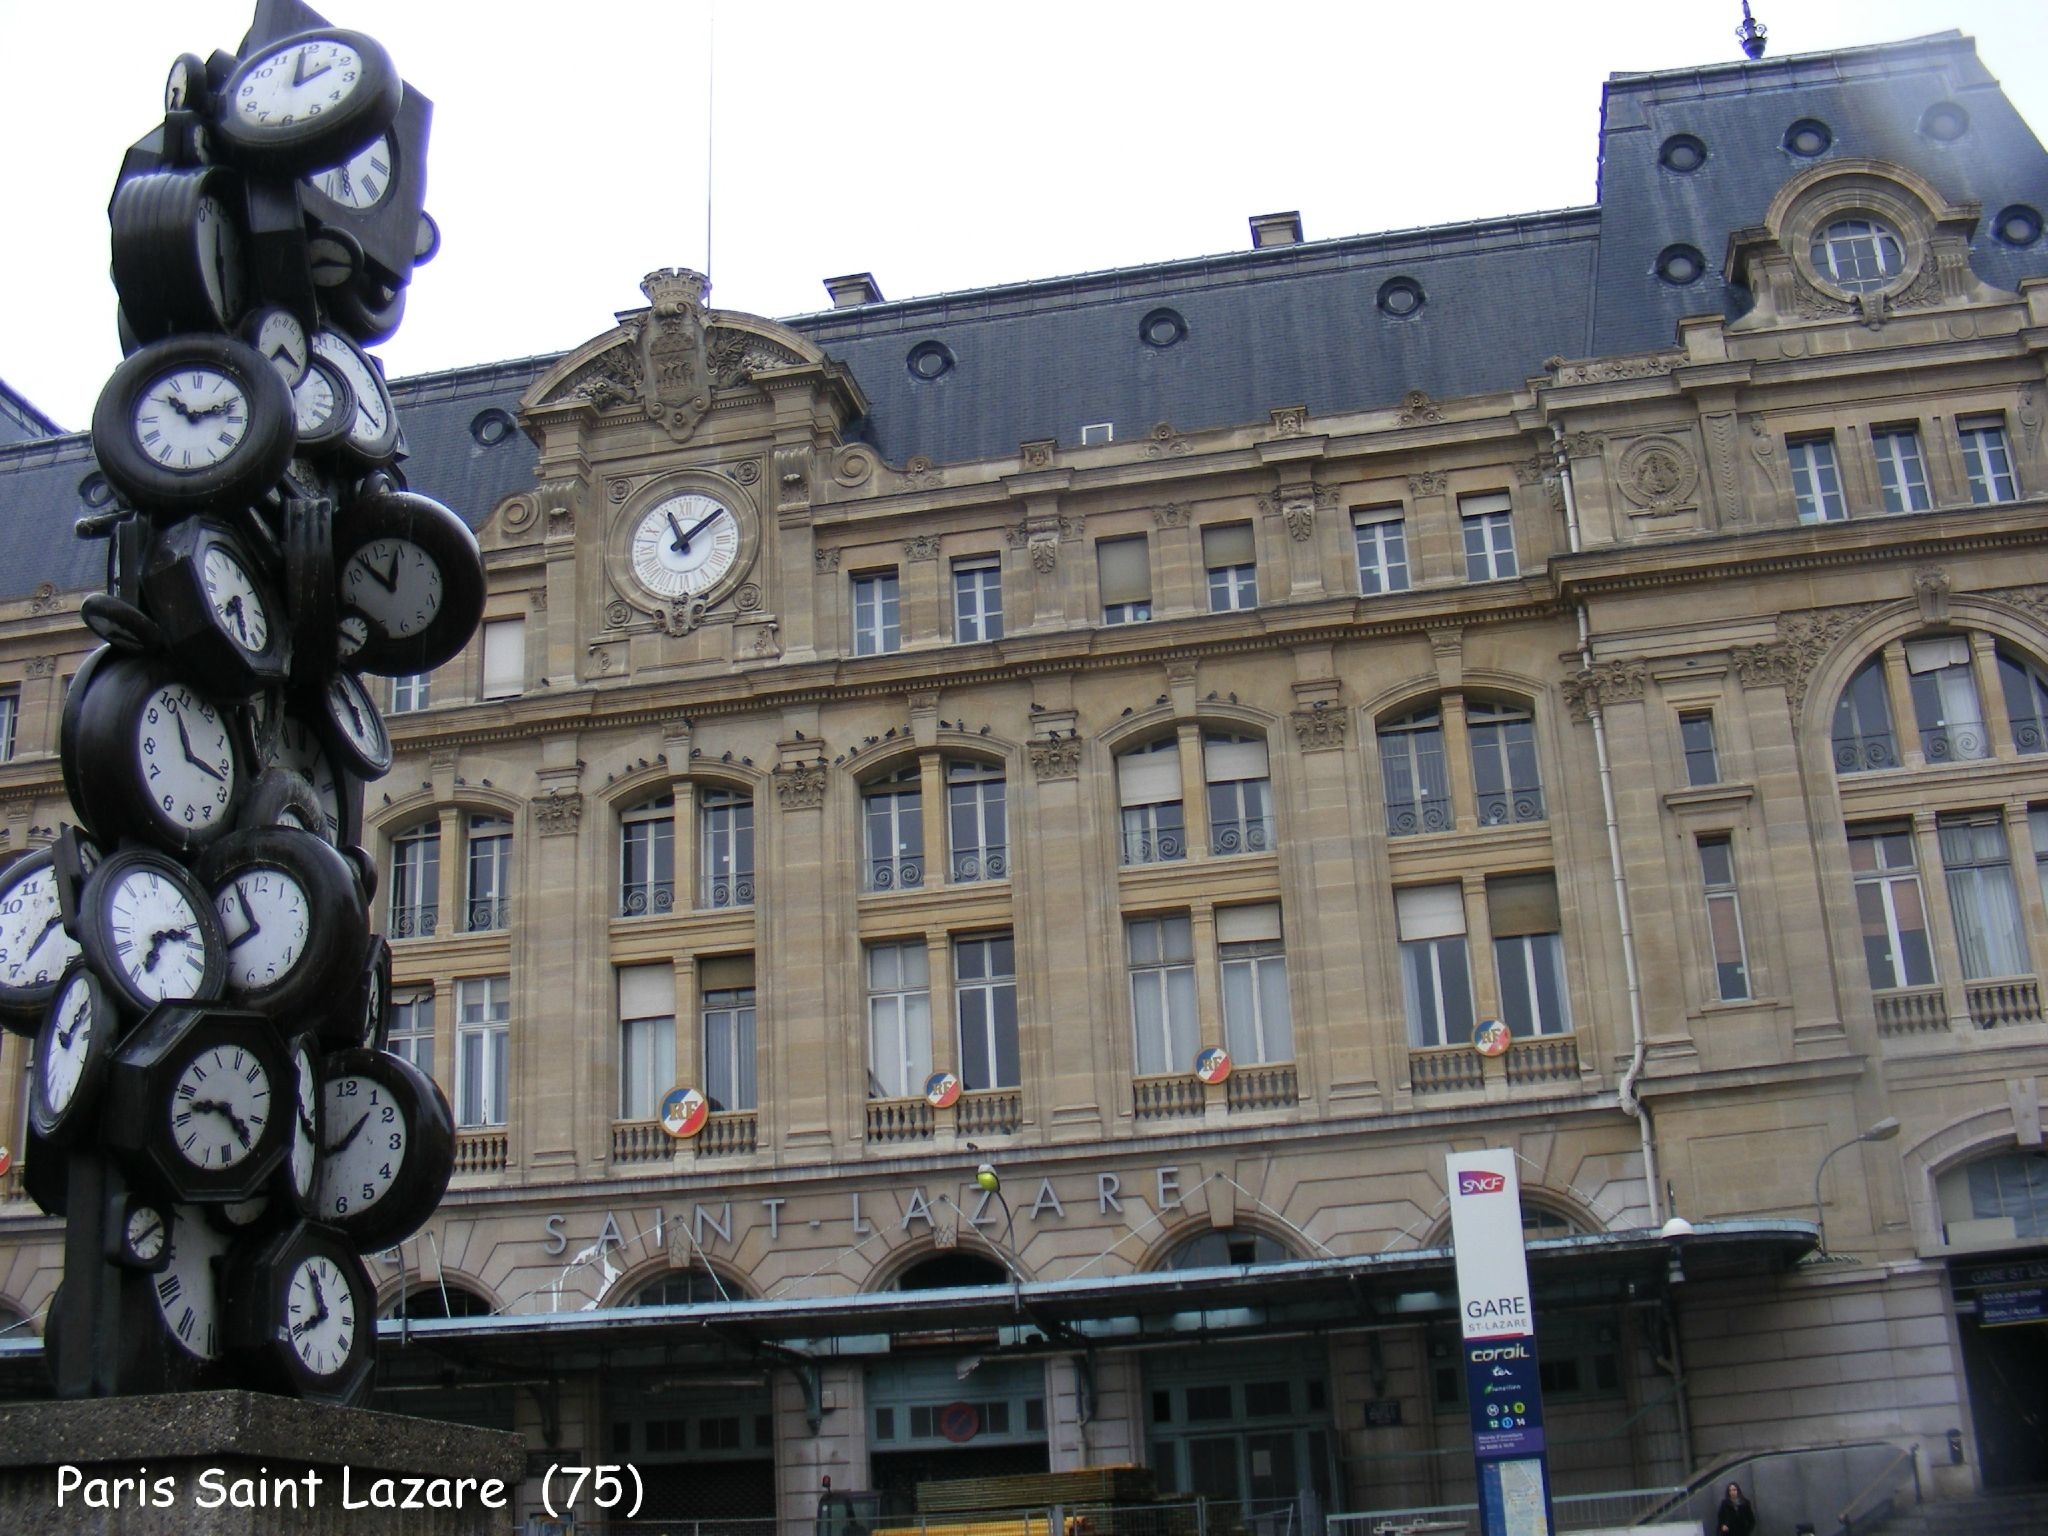 Gare De Paris Gare St Lazare Paris Gare De Paris St Lazare Photo De Les